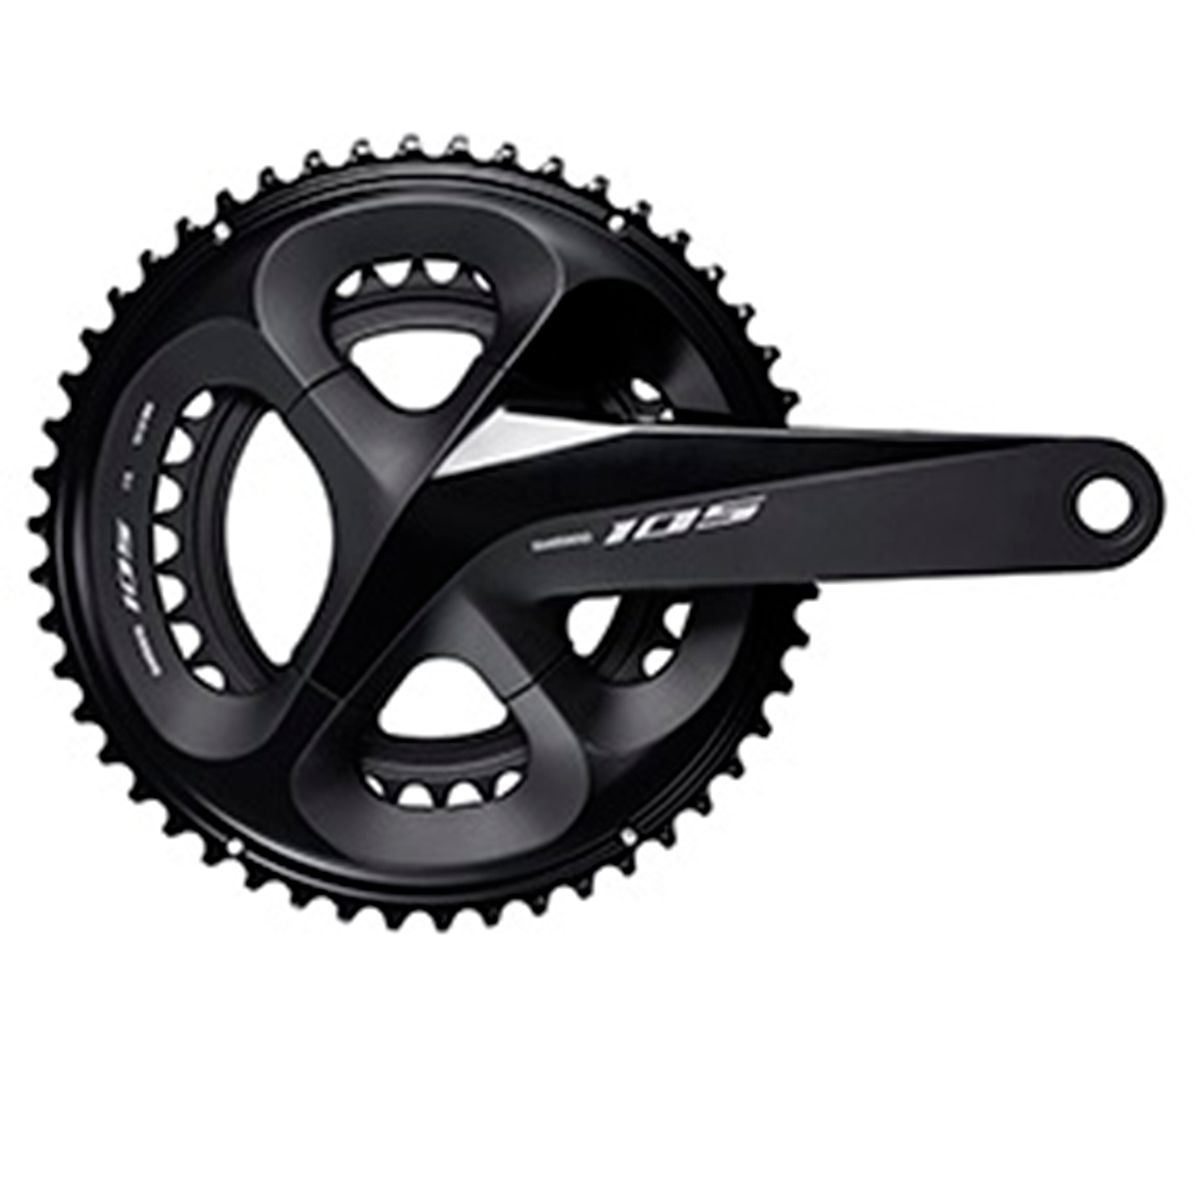 105 FC-R7000 Hollowtech II 11-speed crankset